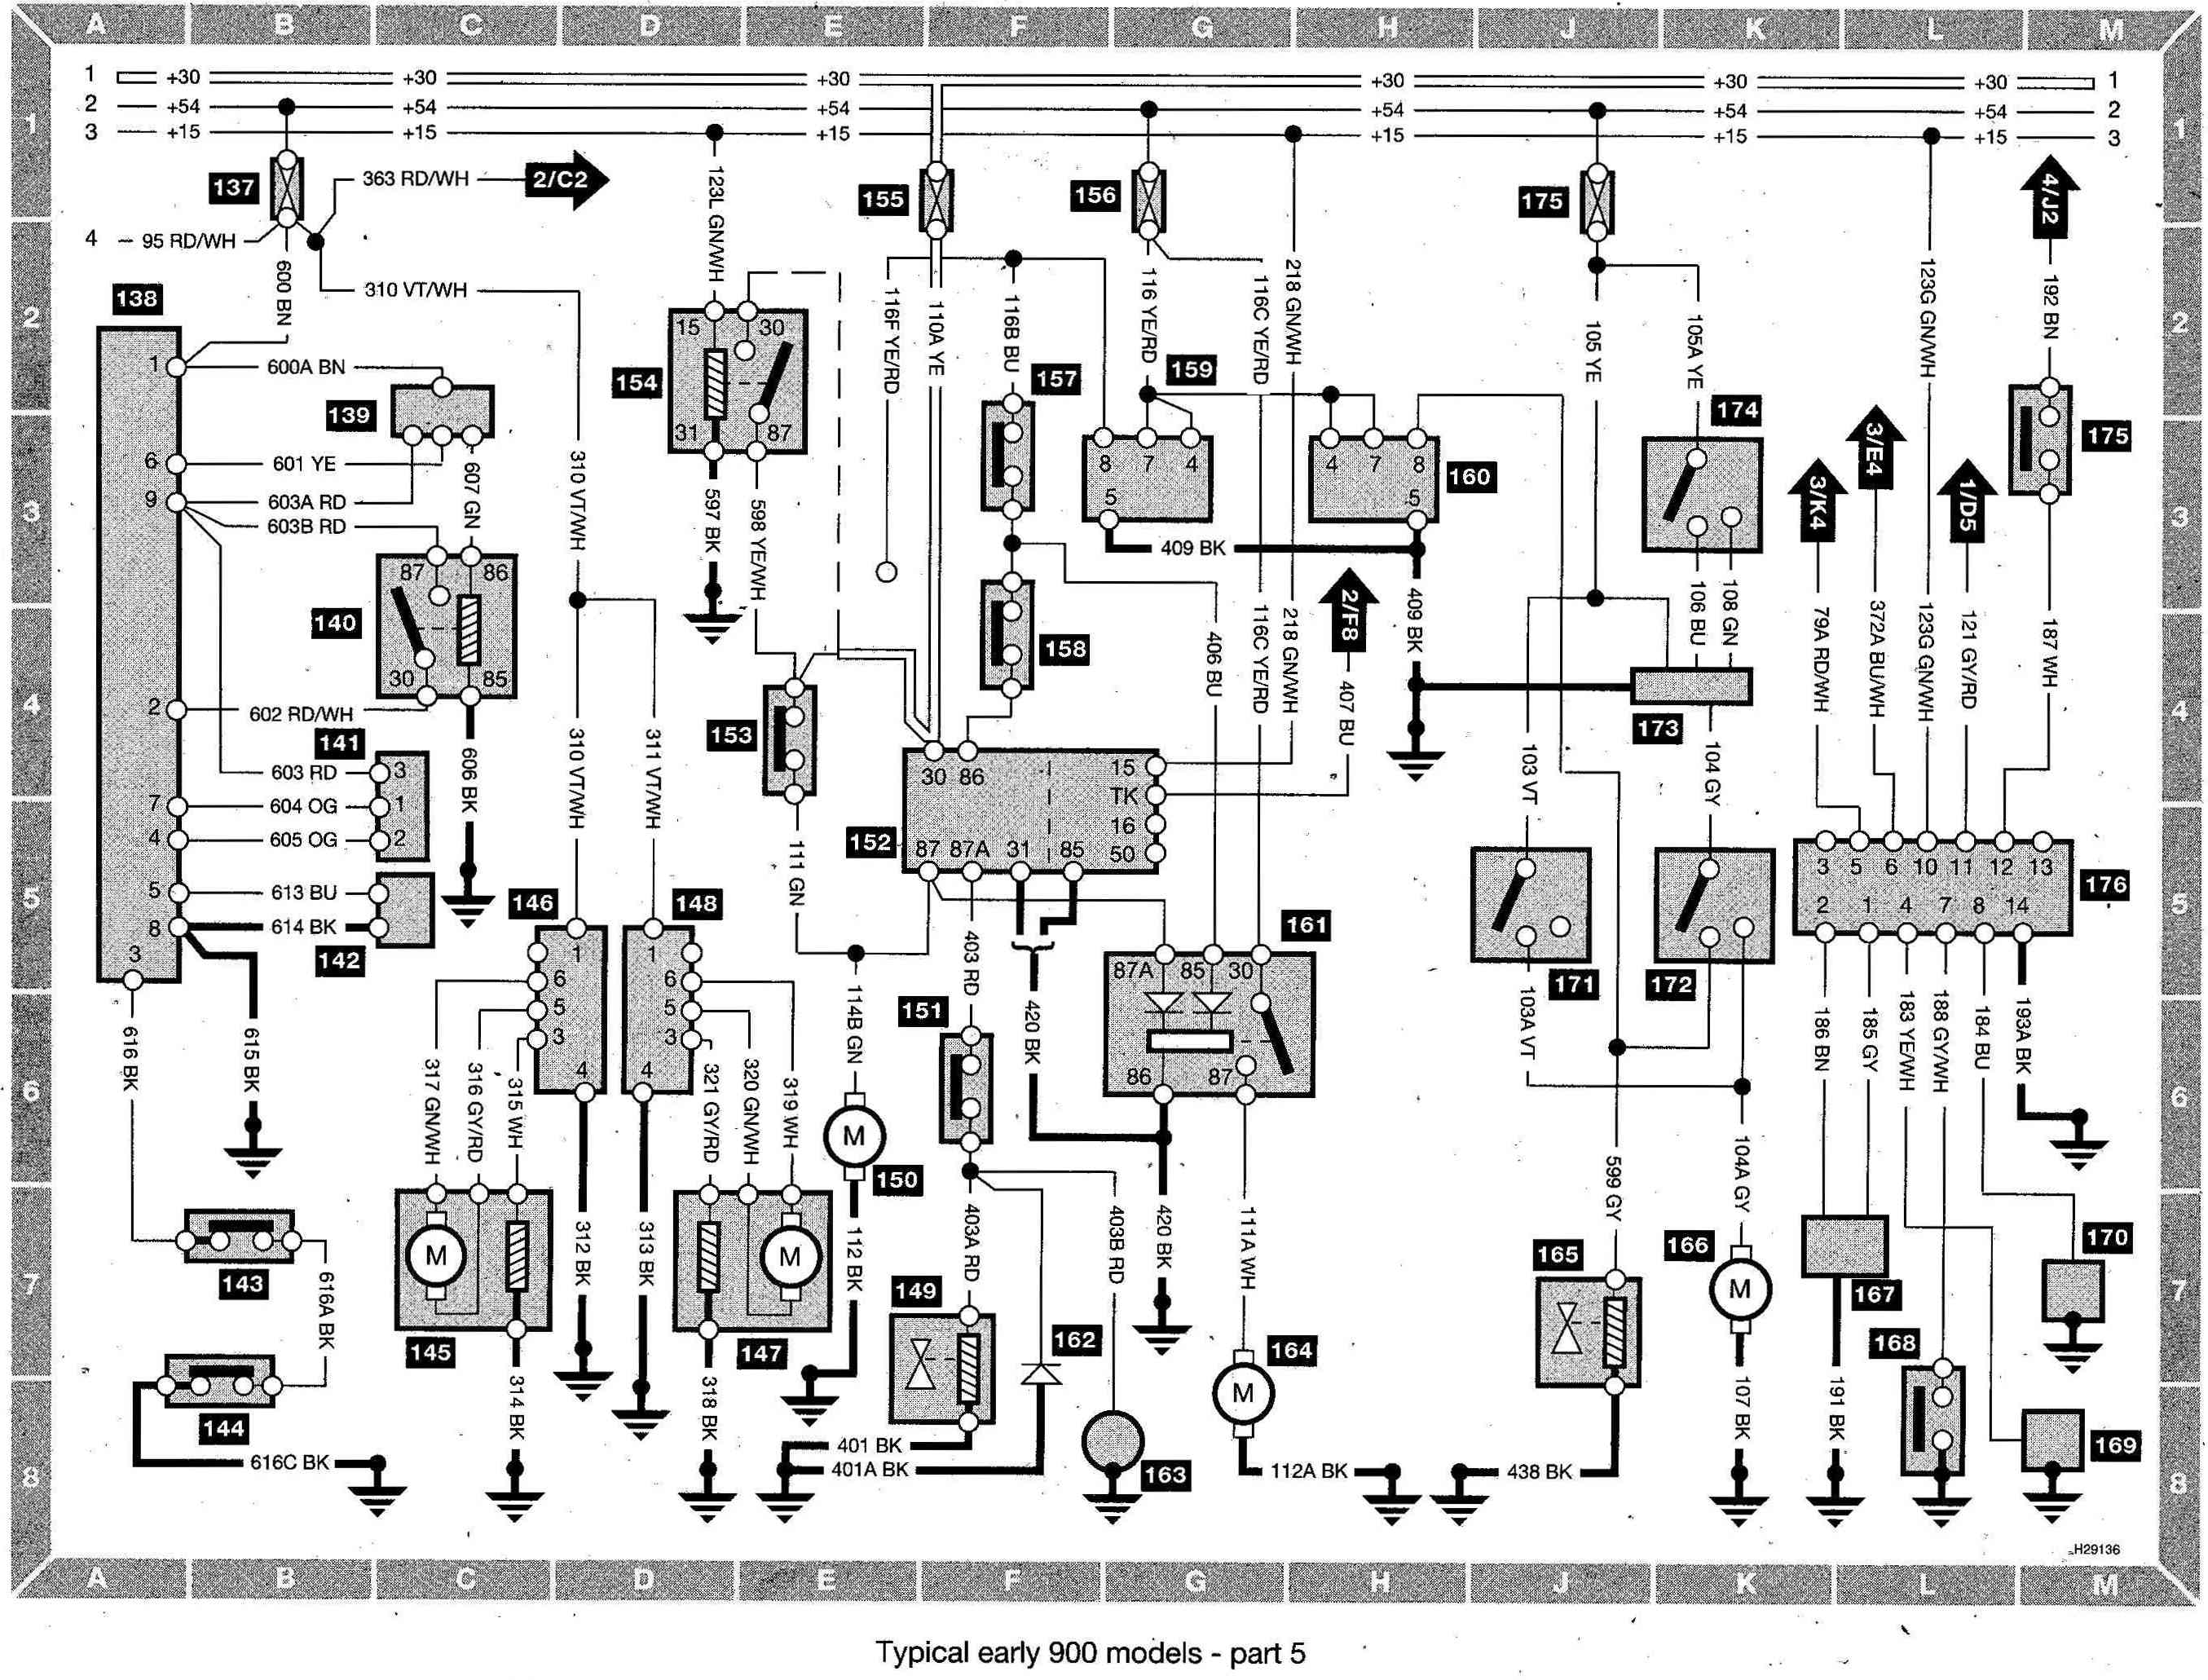 Wiring Harness 93 Saab 900 Ignition Diagram Will Be A Thing Olds 403 Distributor Free Engine Image For User 84